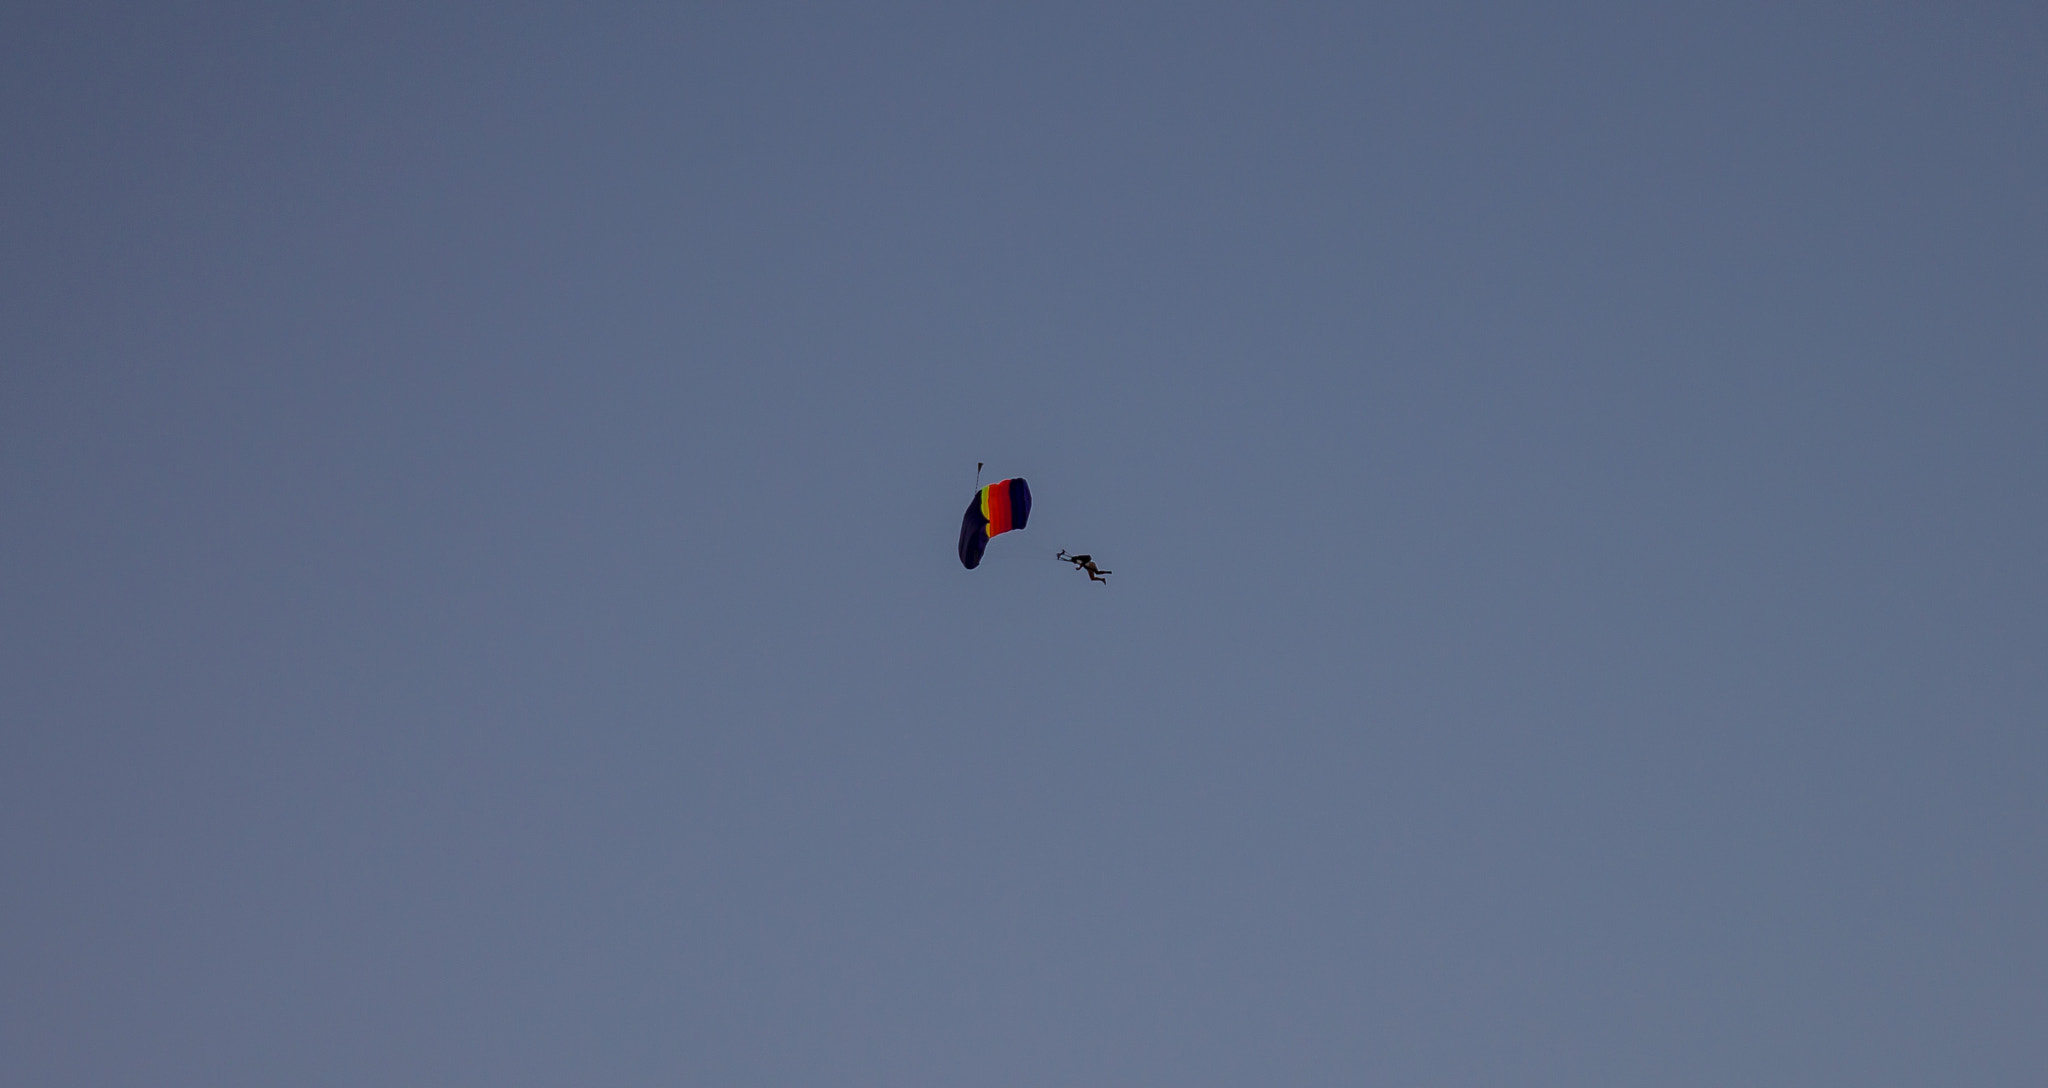 Photograph Parachutist in blue sky by Fedor Petrovskiy on 500px